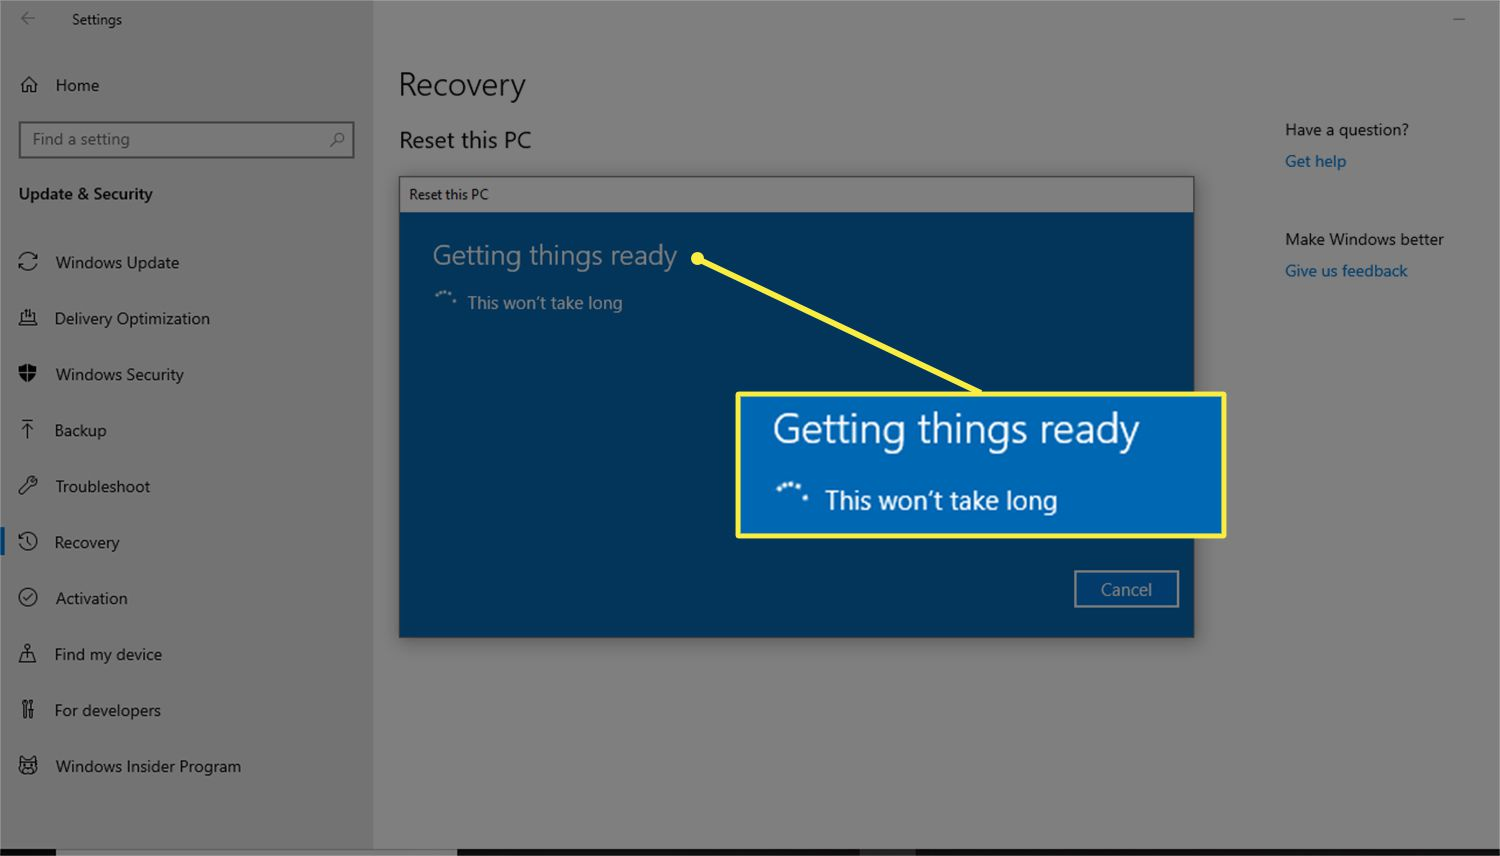 Getting things ready message that appears when a PC prepares to reset